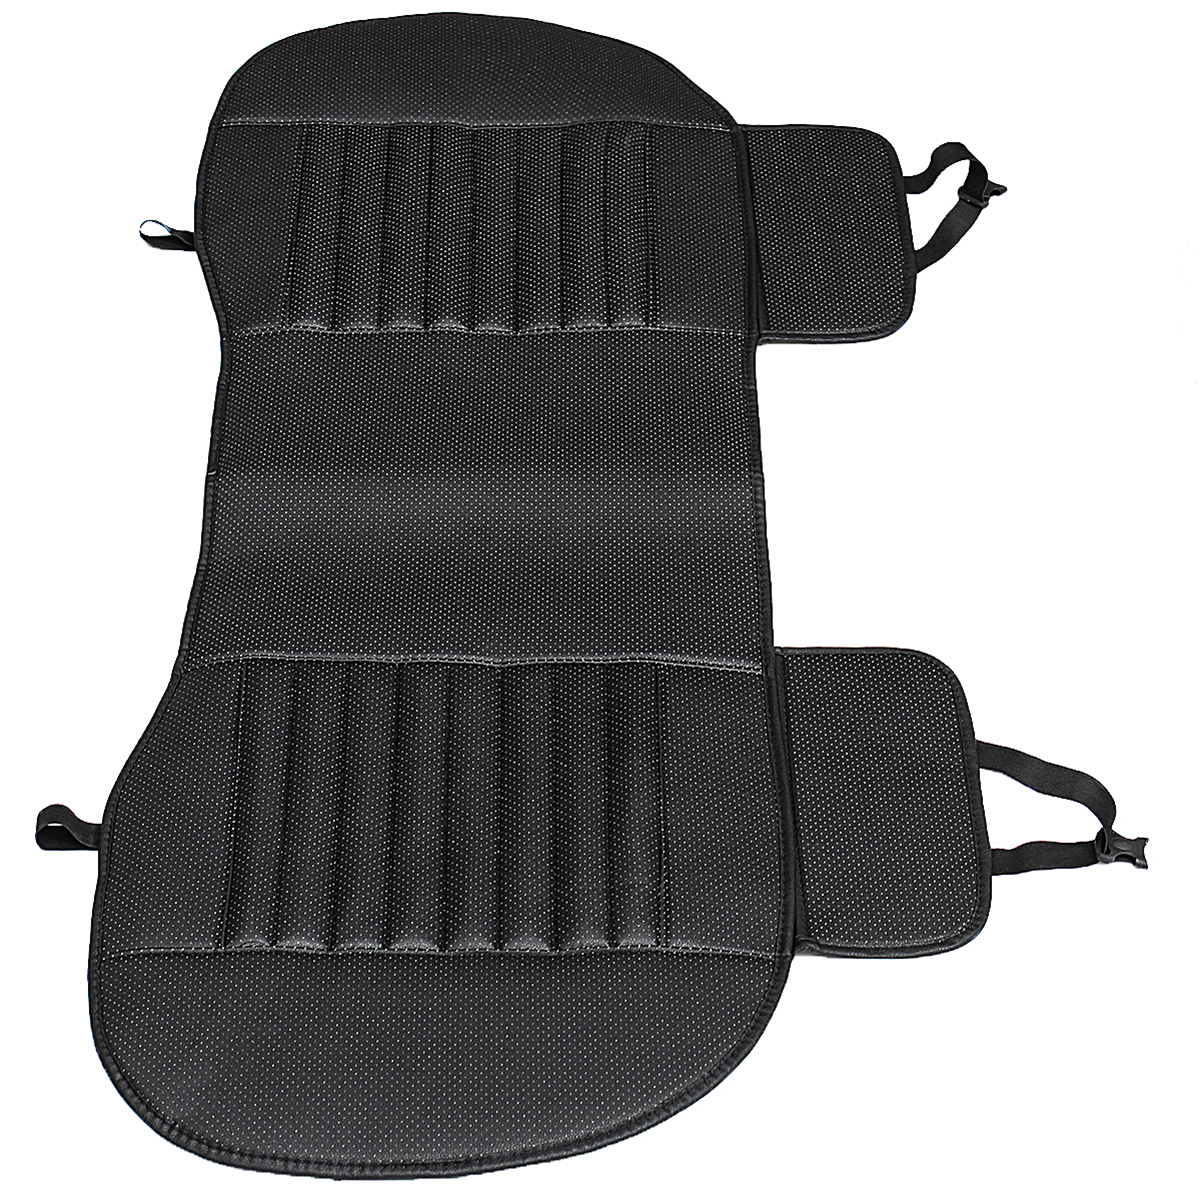 138X49cm PU Leather Car Rear Seat Covers Universal Seat Protector Seat Cushion Pad Mat